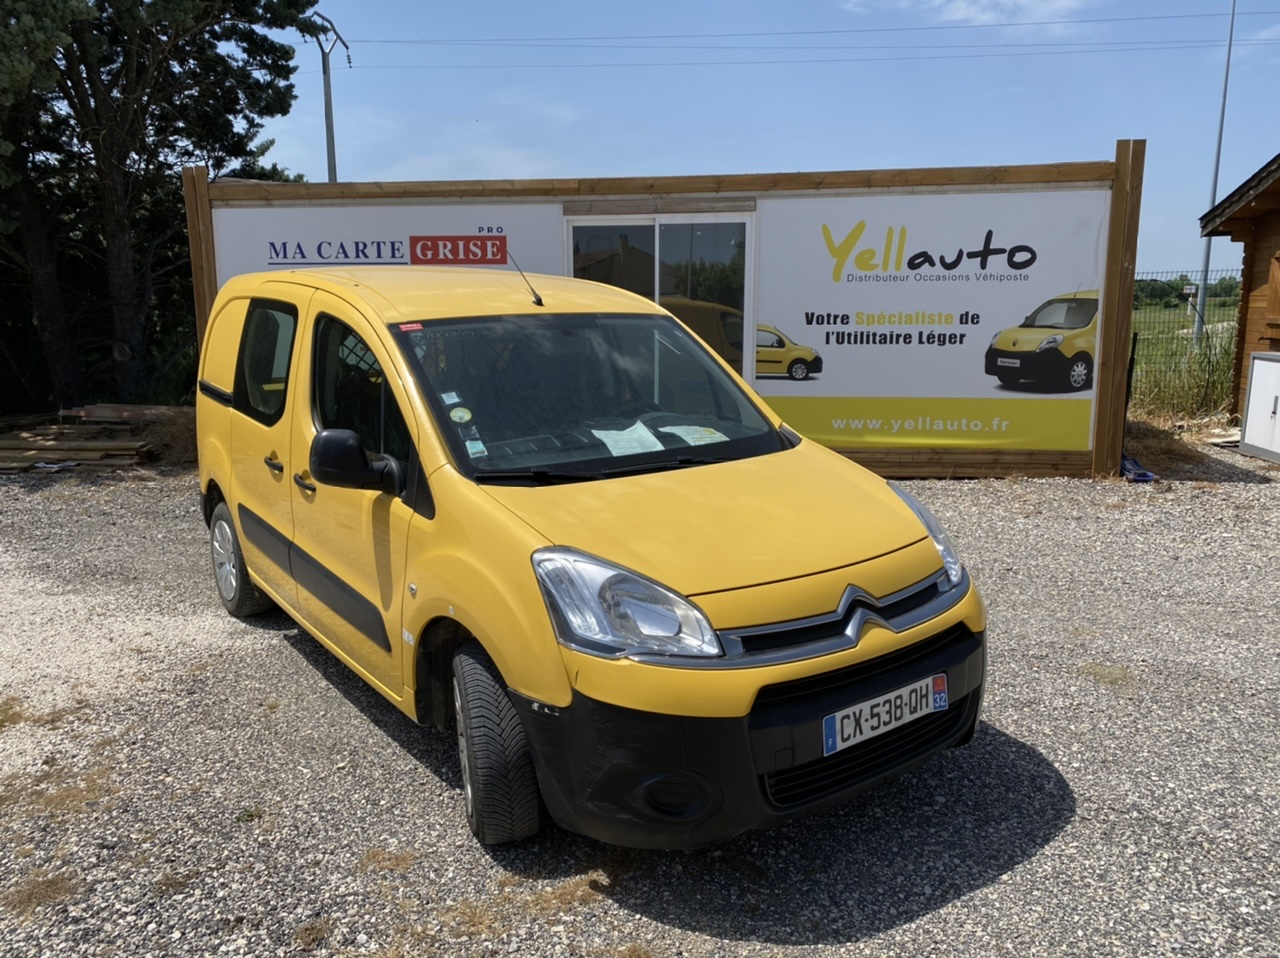 CITROËN BERLINGO 1.6 HDI 75 confort 3 places de 2013 avec 127900 km